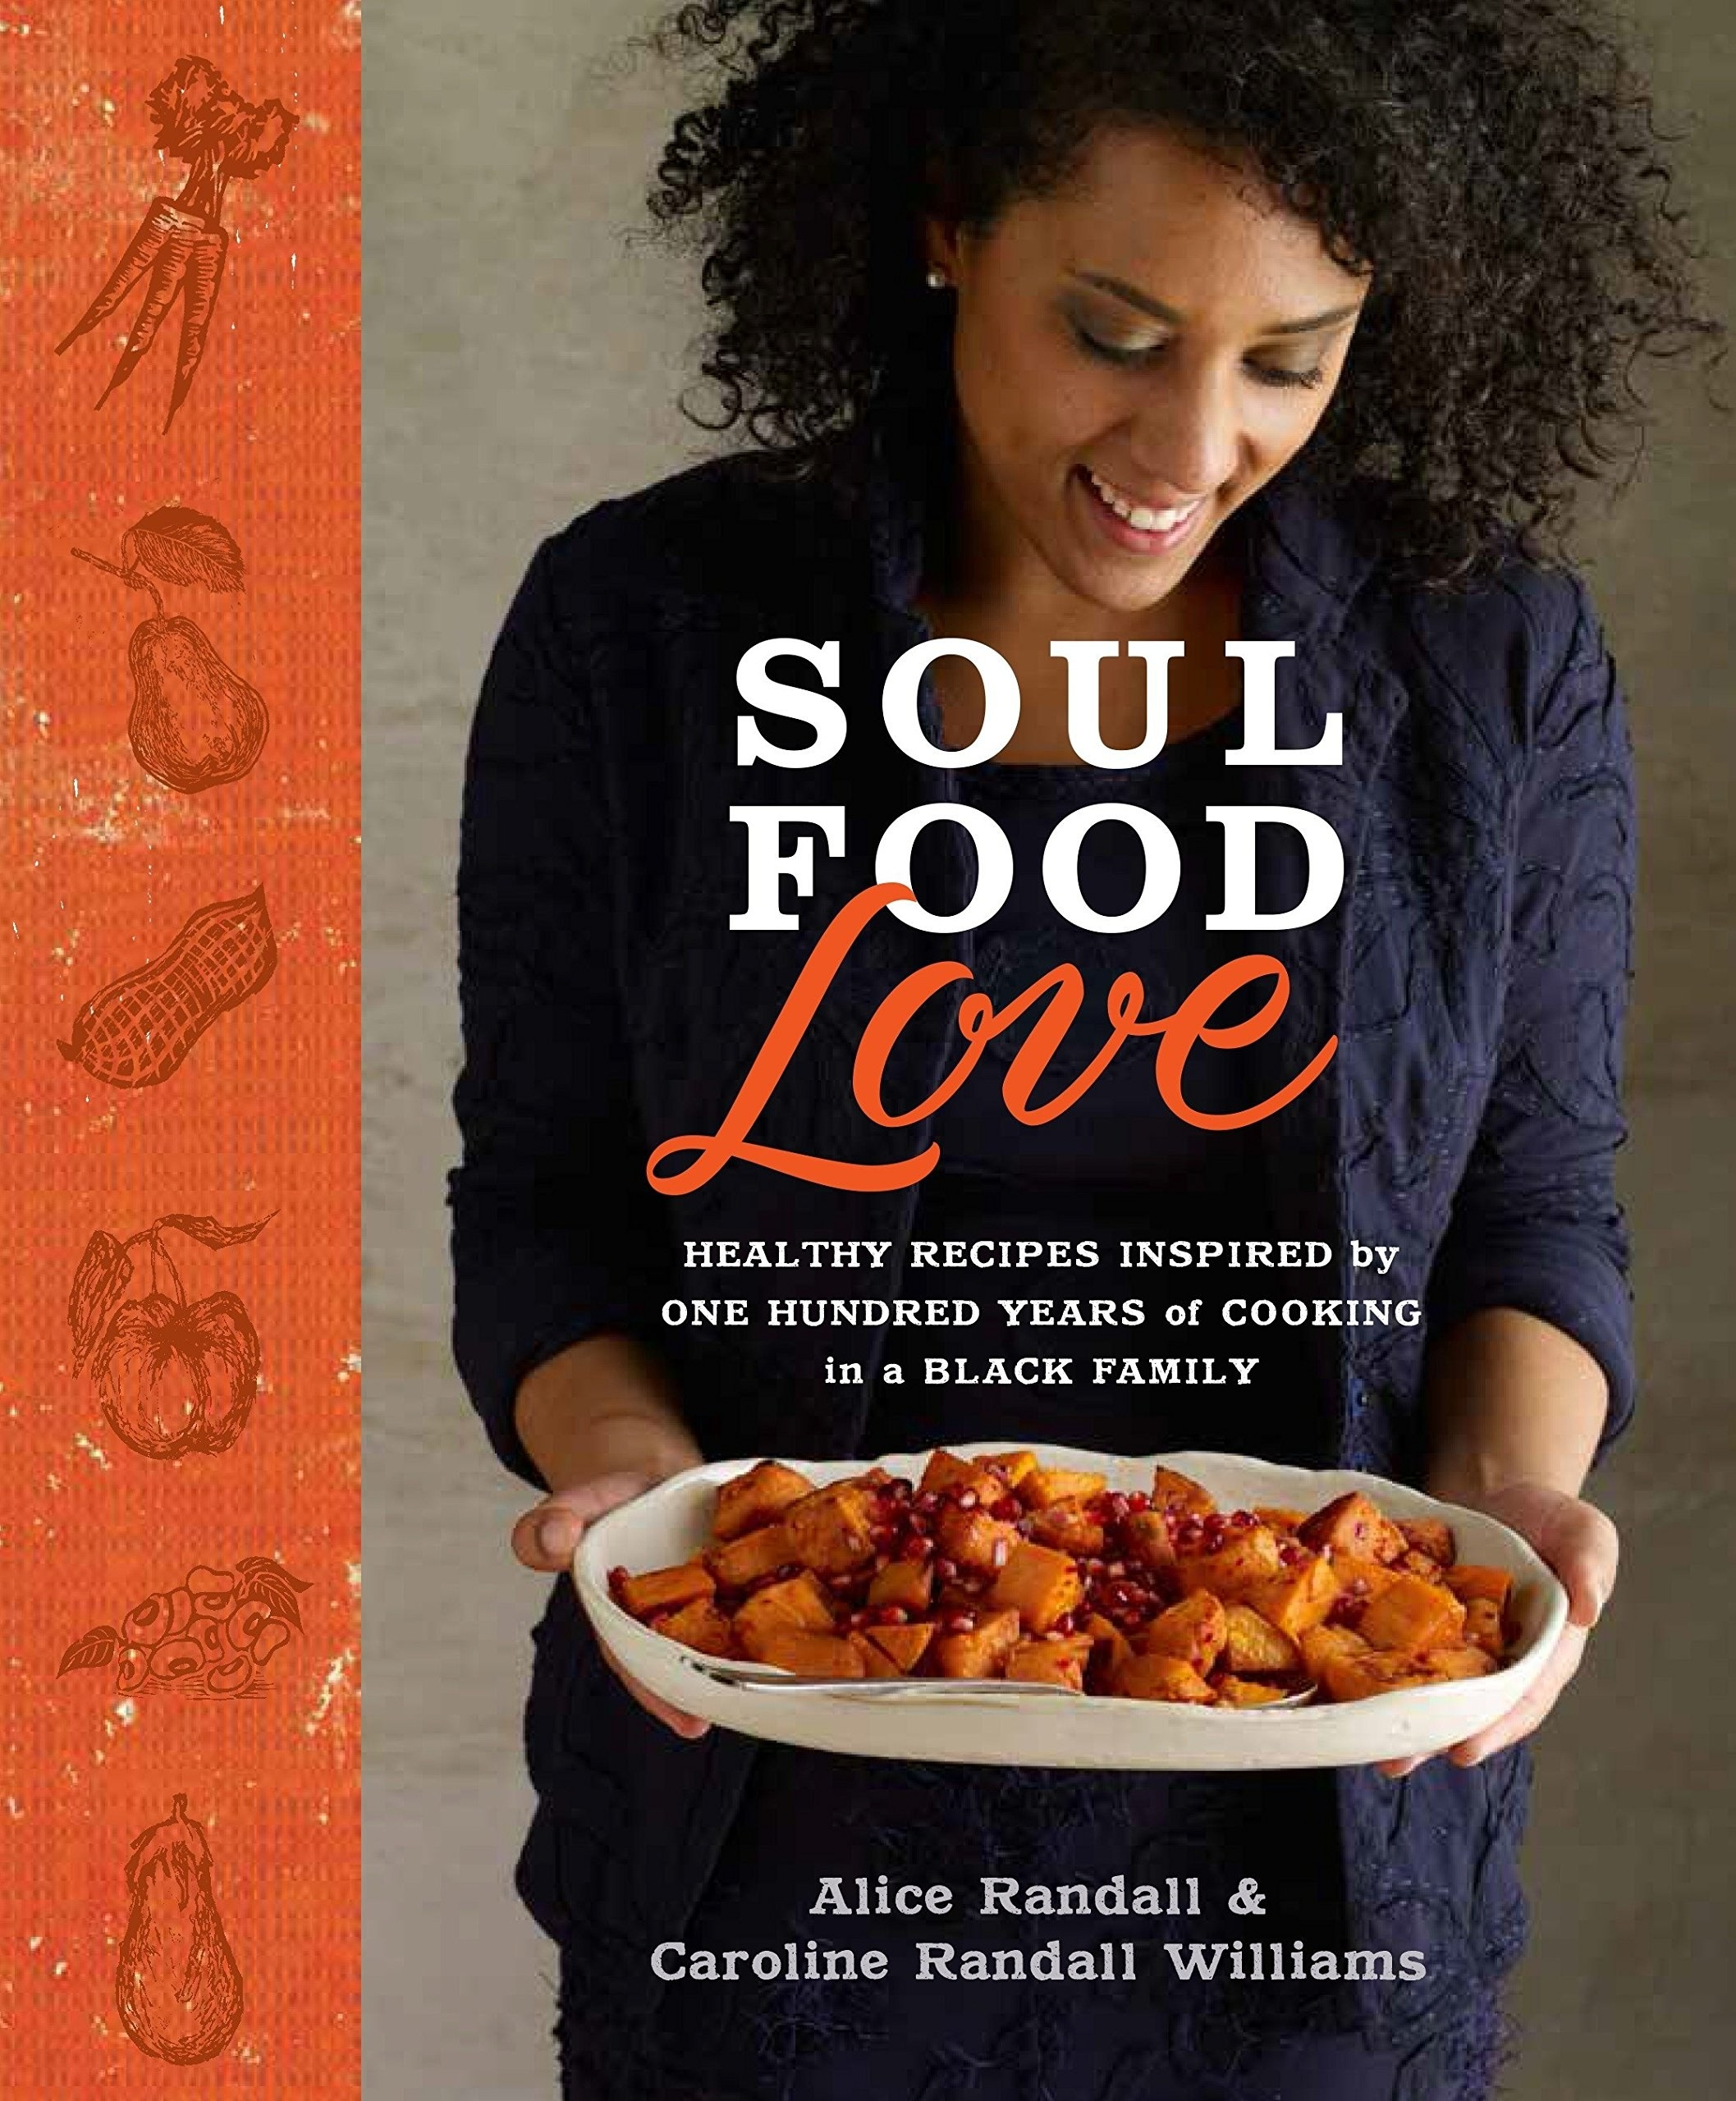 The cover of the book which features author and chef Caroline Randall Williams